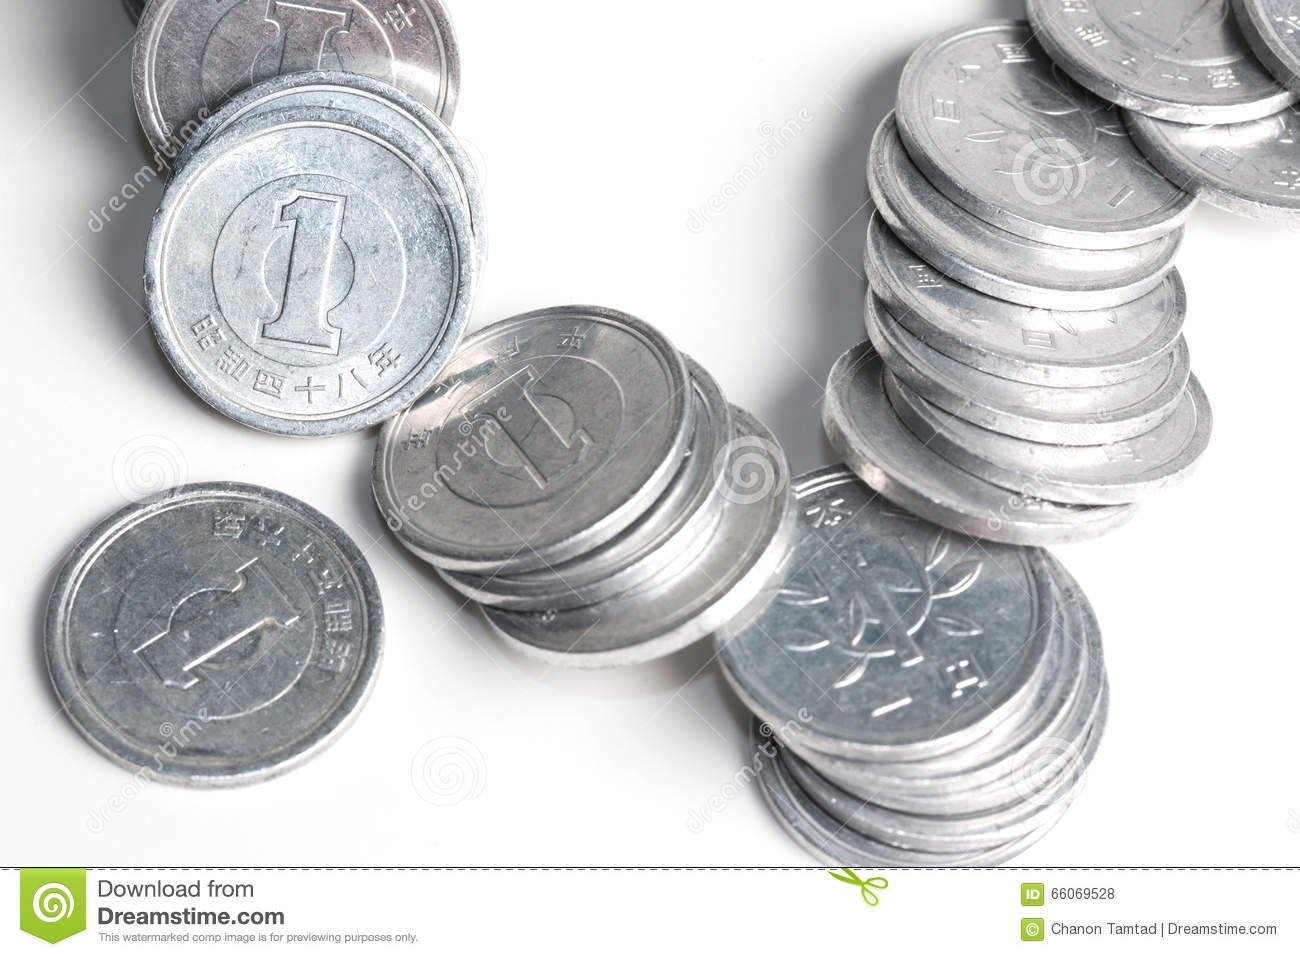 worksheet Yen Coins pile of 5 yen coins japanese money stock photo image 66069467 1 royalty free photos